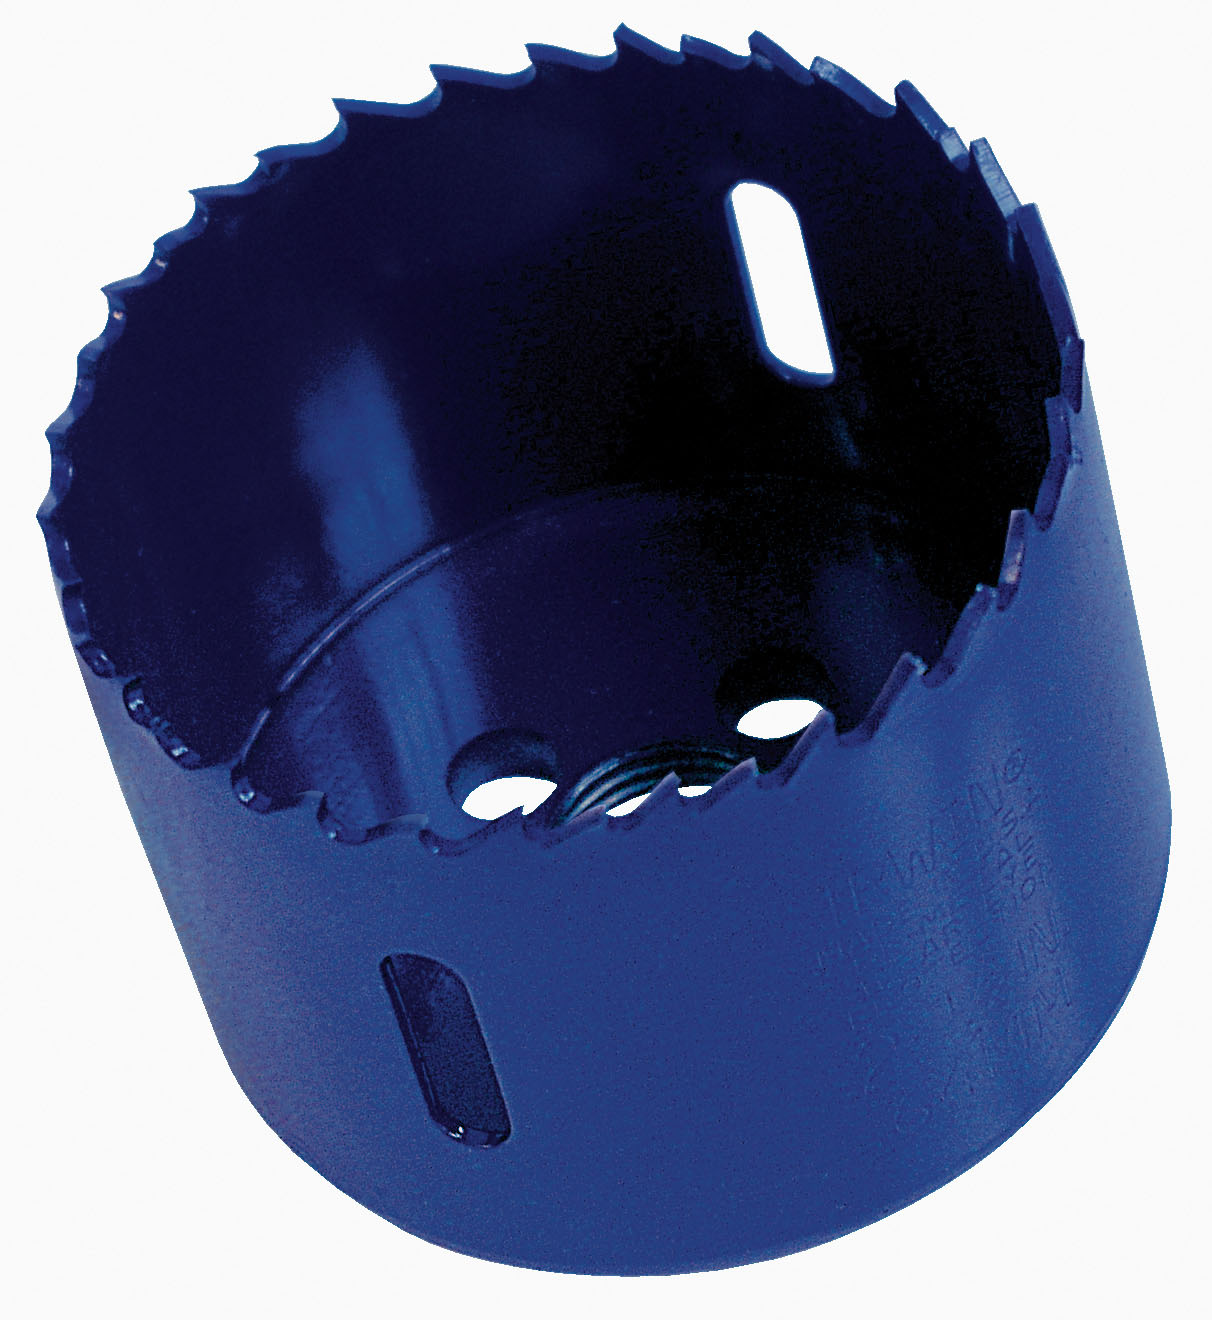 IRWIN 10504169 - Bi-Metal Holesaw 25mm – 1in